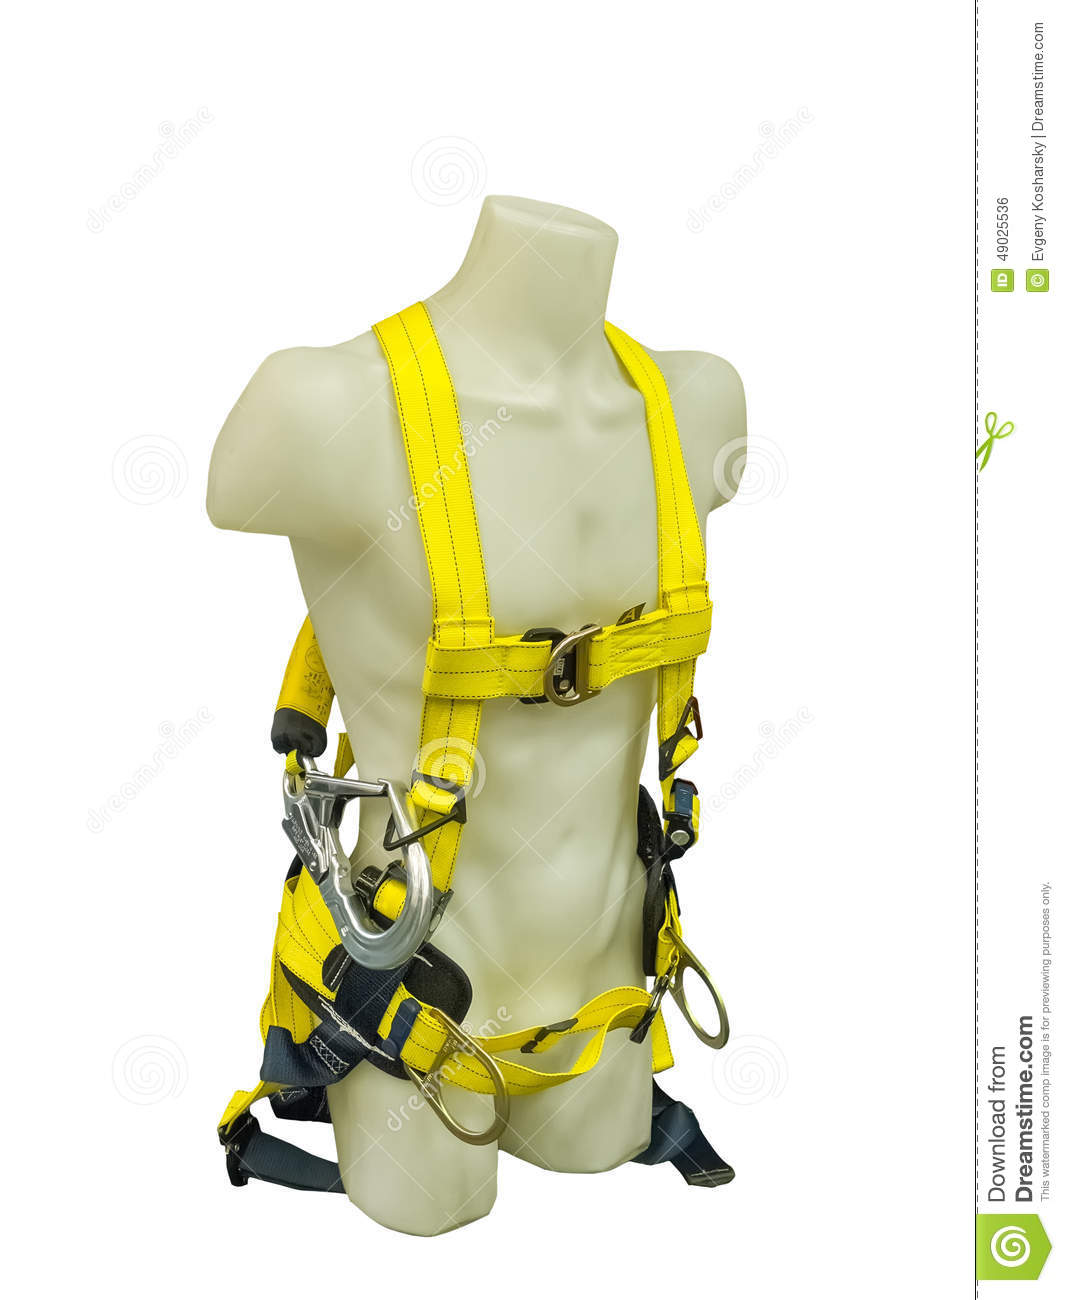 Safety Harness Equipment Stock Photo   Image  49025536